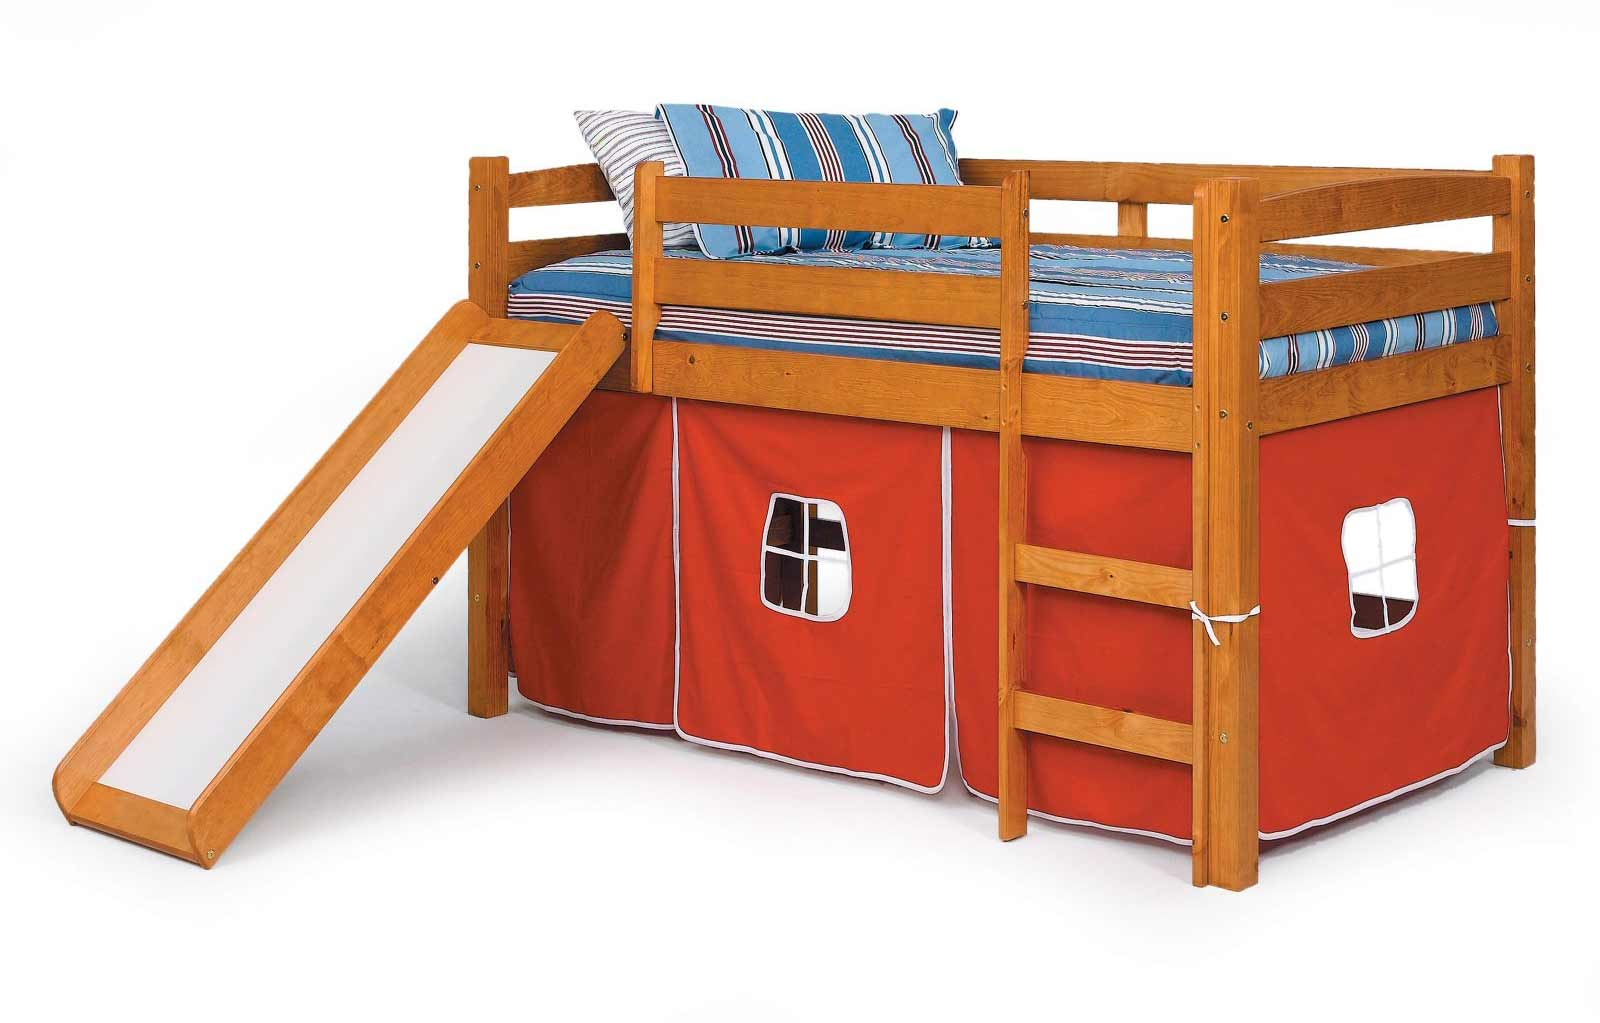 Baby bed with slide - Baby Bed With Slide 41